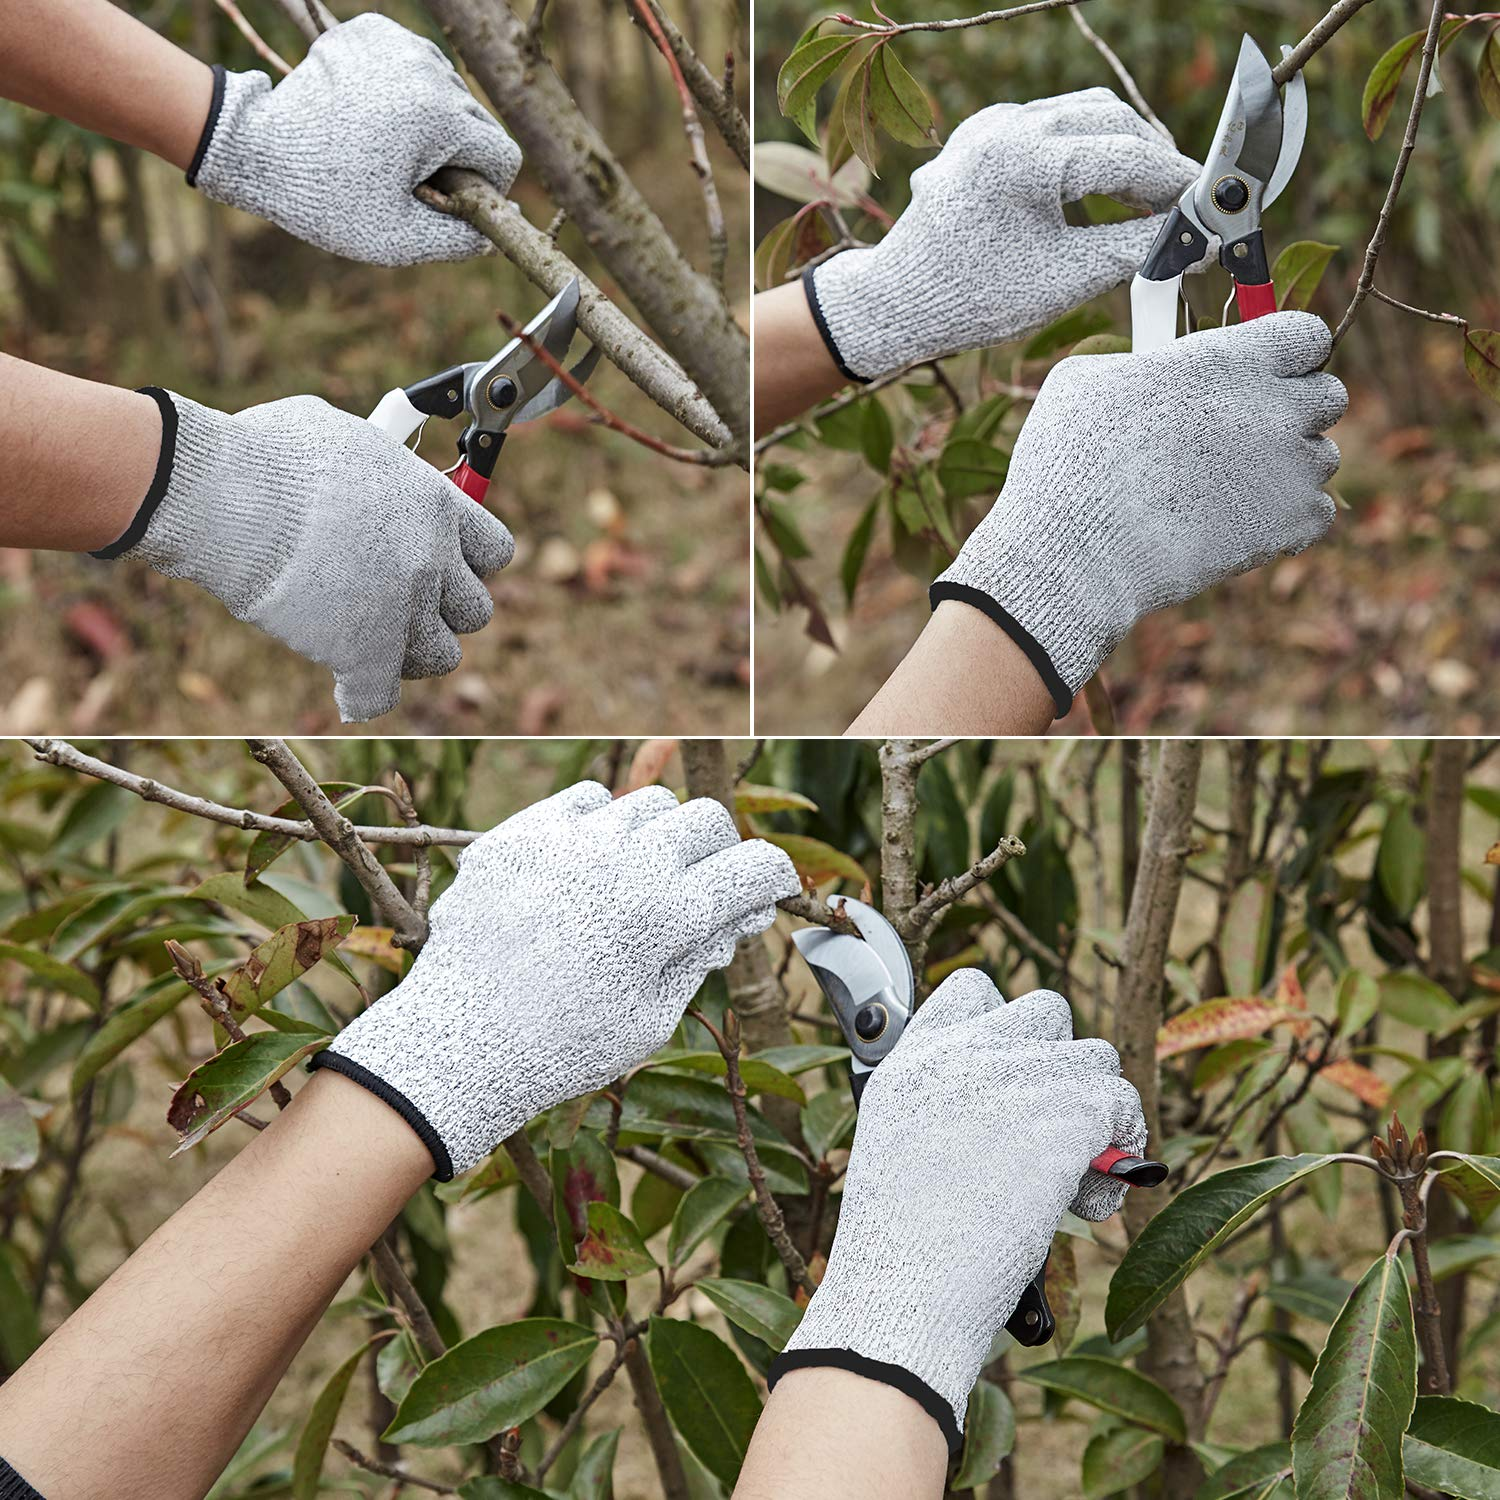 Grey 2 Pairs Anti-Cutting Durable and Safety Working Glove for Woodworking Sawing and Carving Cut Resistant Gloves for Kitchen Cutting Slicing Work High Performance Level 5 Safe Protection